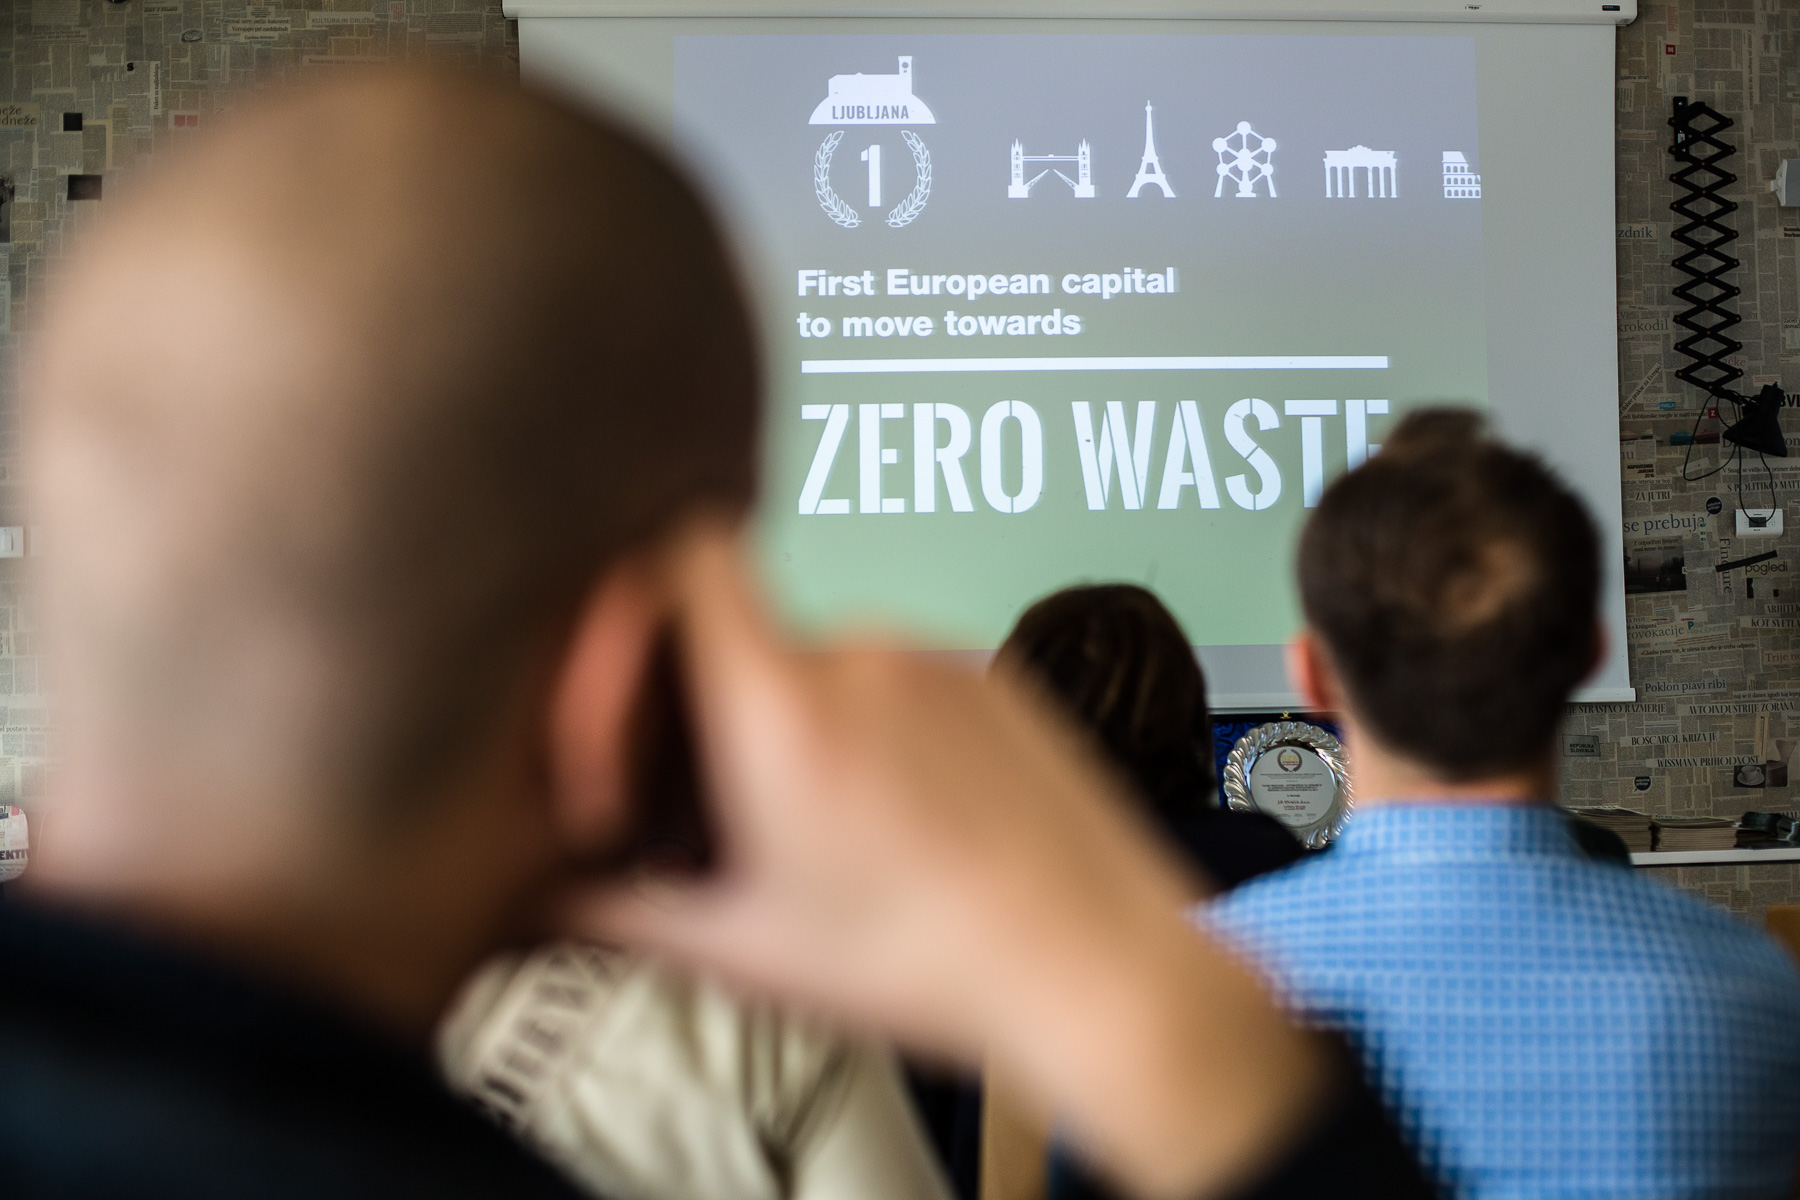 International guests visit the RCERO Ljubljana on their zero waste study tour of Slovenia organized by Zero Waste Europe on May 8, 2019.